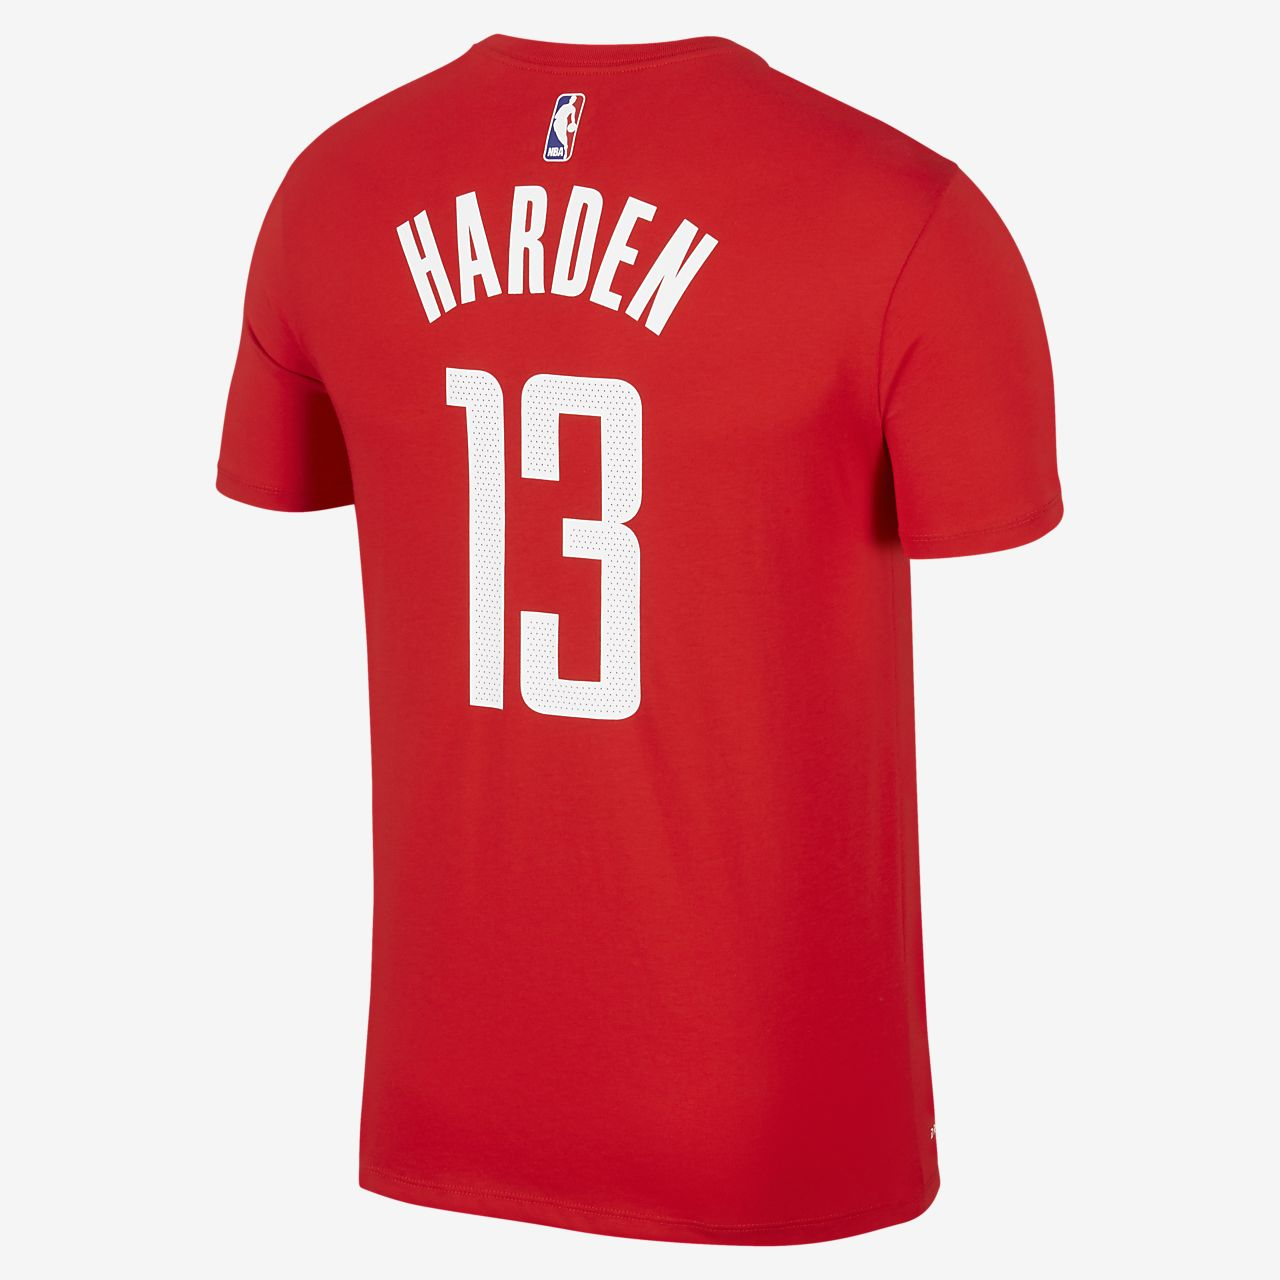 7ecf56ac8cd James Harden Houston Rockets Nike Dri-FIT Men s NBA T-Shirt. Nike.com AU